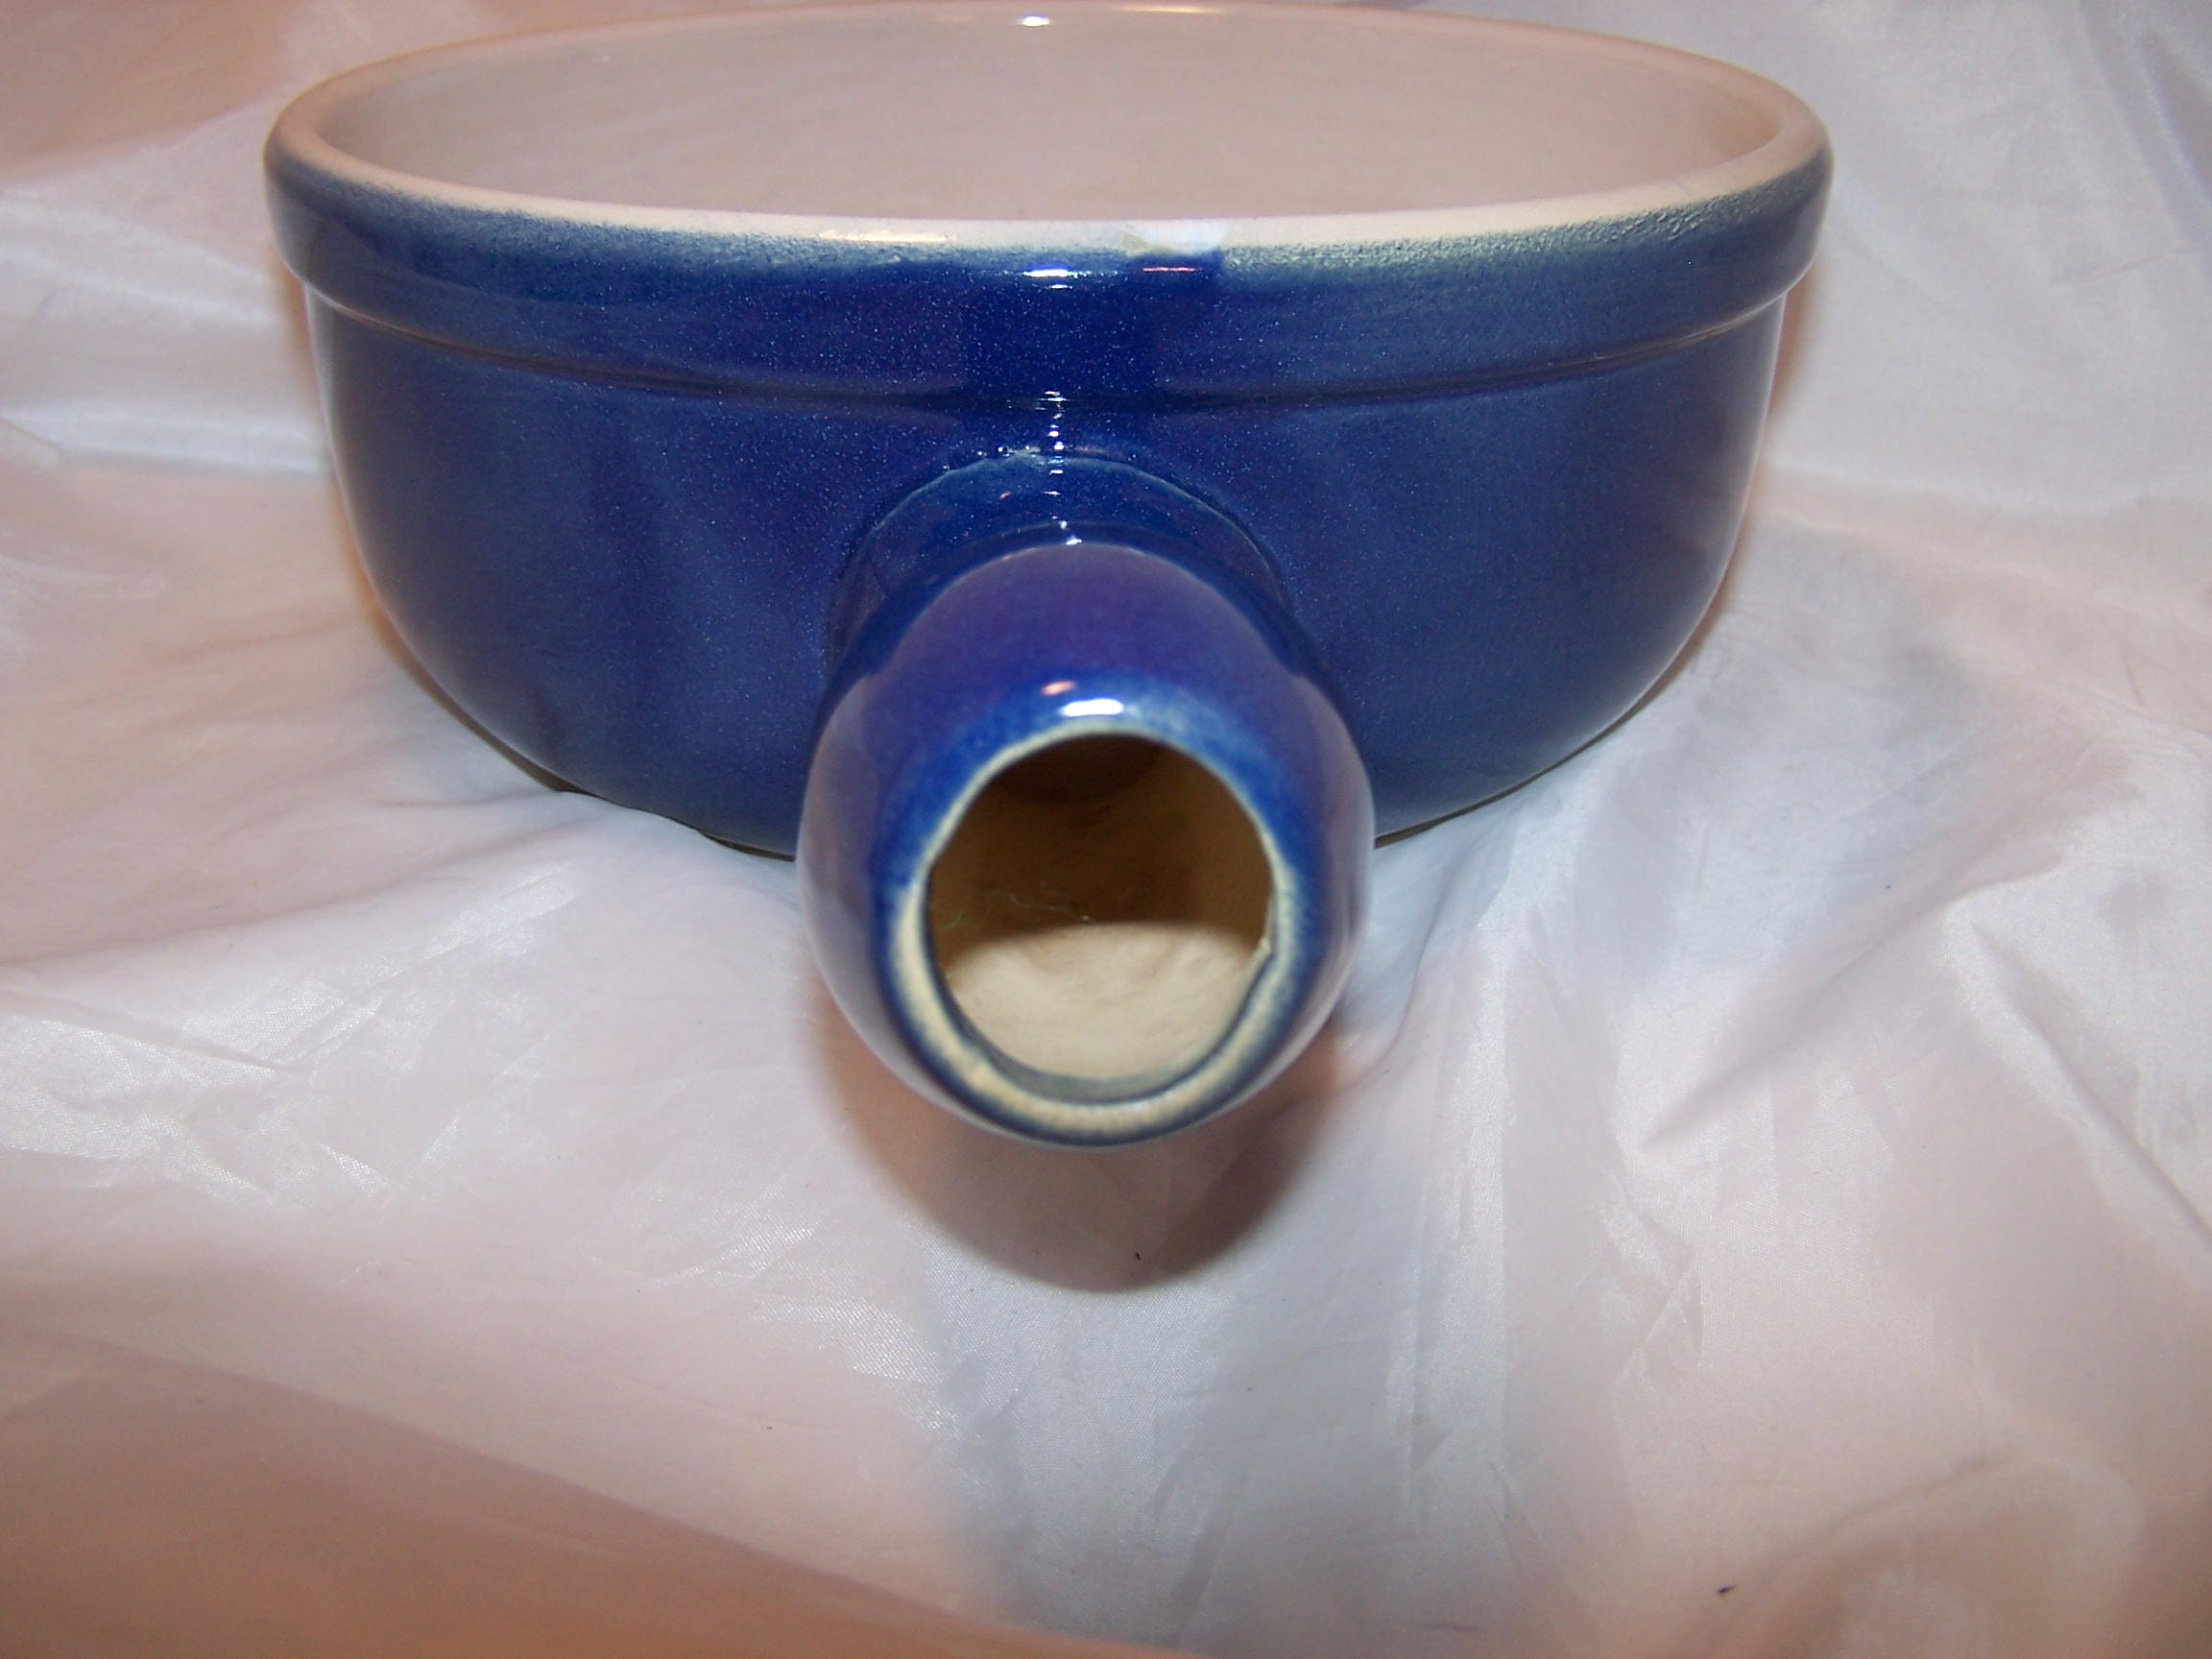 Image 4 of Cooking Pot, Cobalt Blue Microwave Stoneware, CCF, France